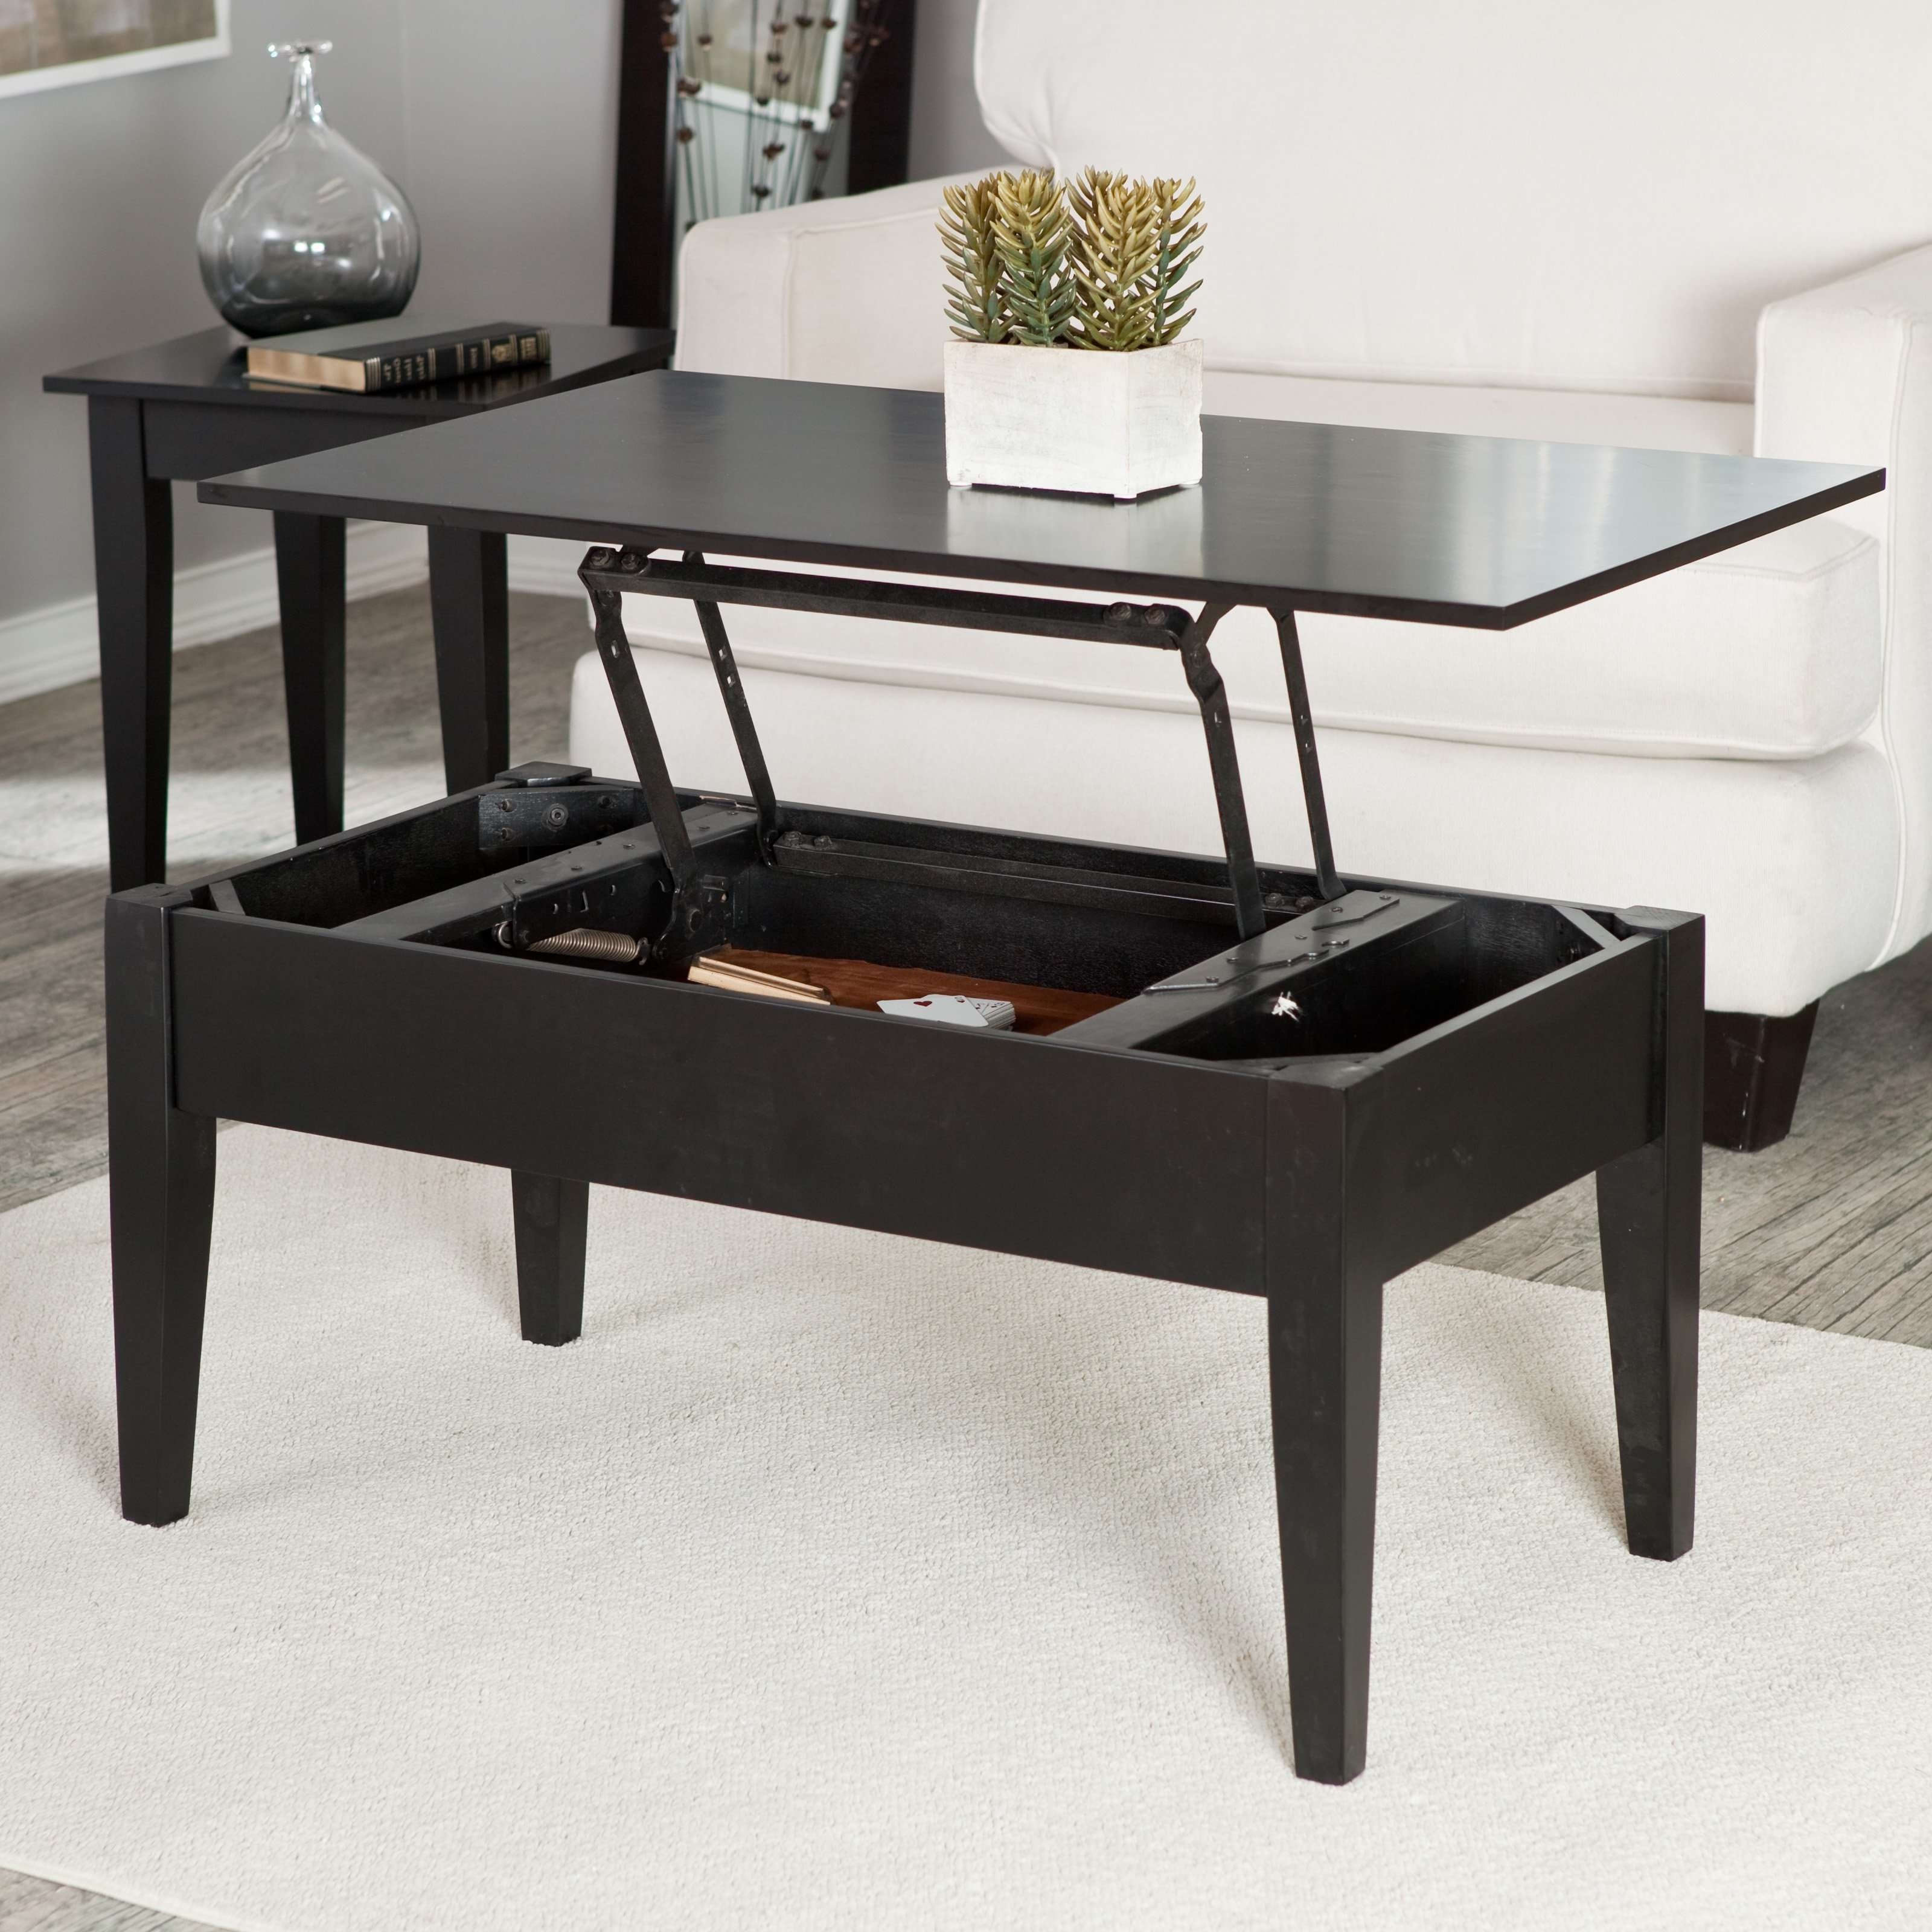 Newest Lifting Coffee Tables Regarding Turner Lift Top Coffee Table – Espresso (View 2 of 20)